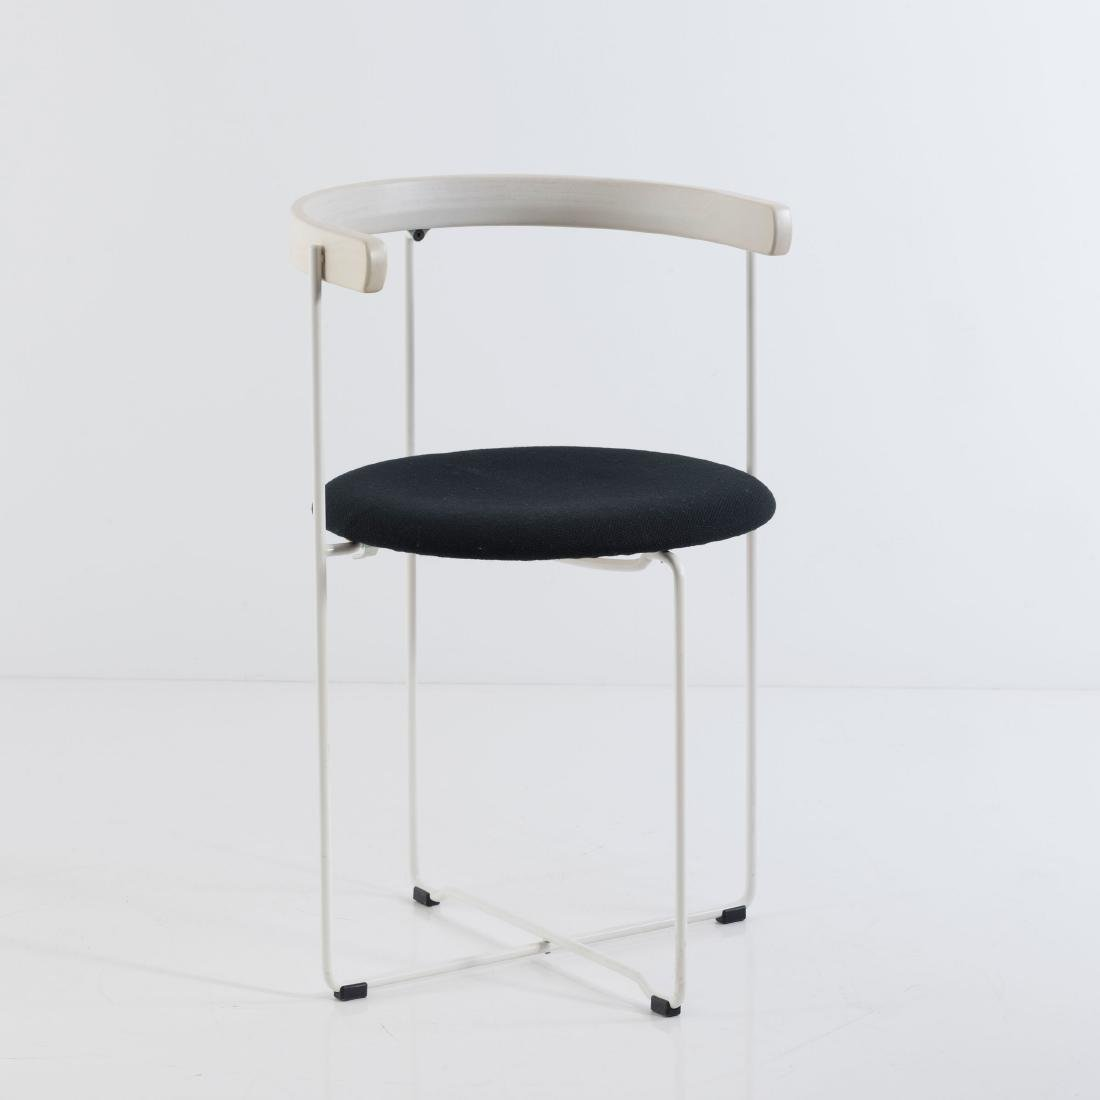 Five 'Sóley' folding chairs, 1983/84 - 2